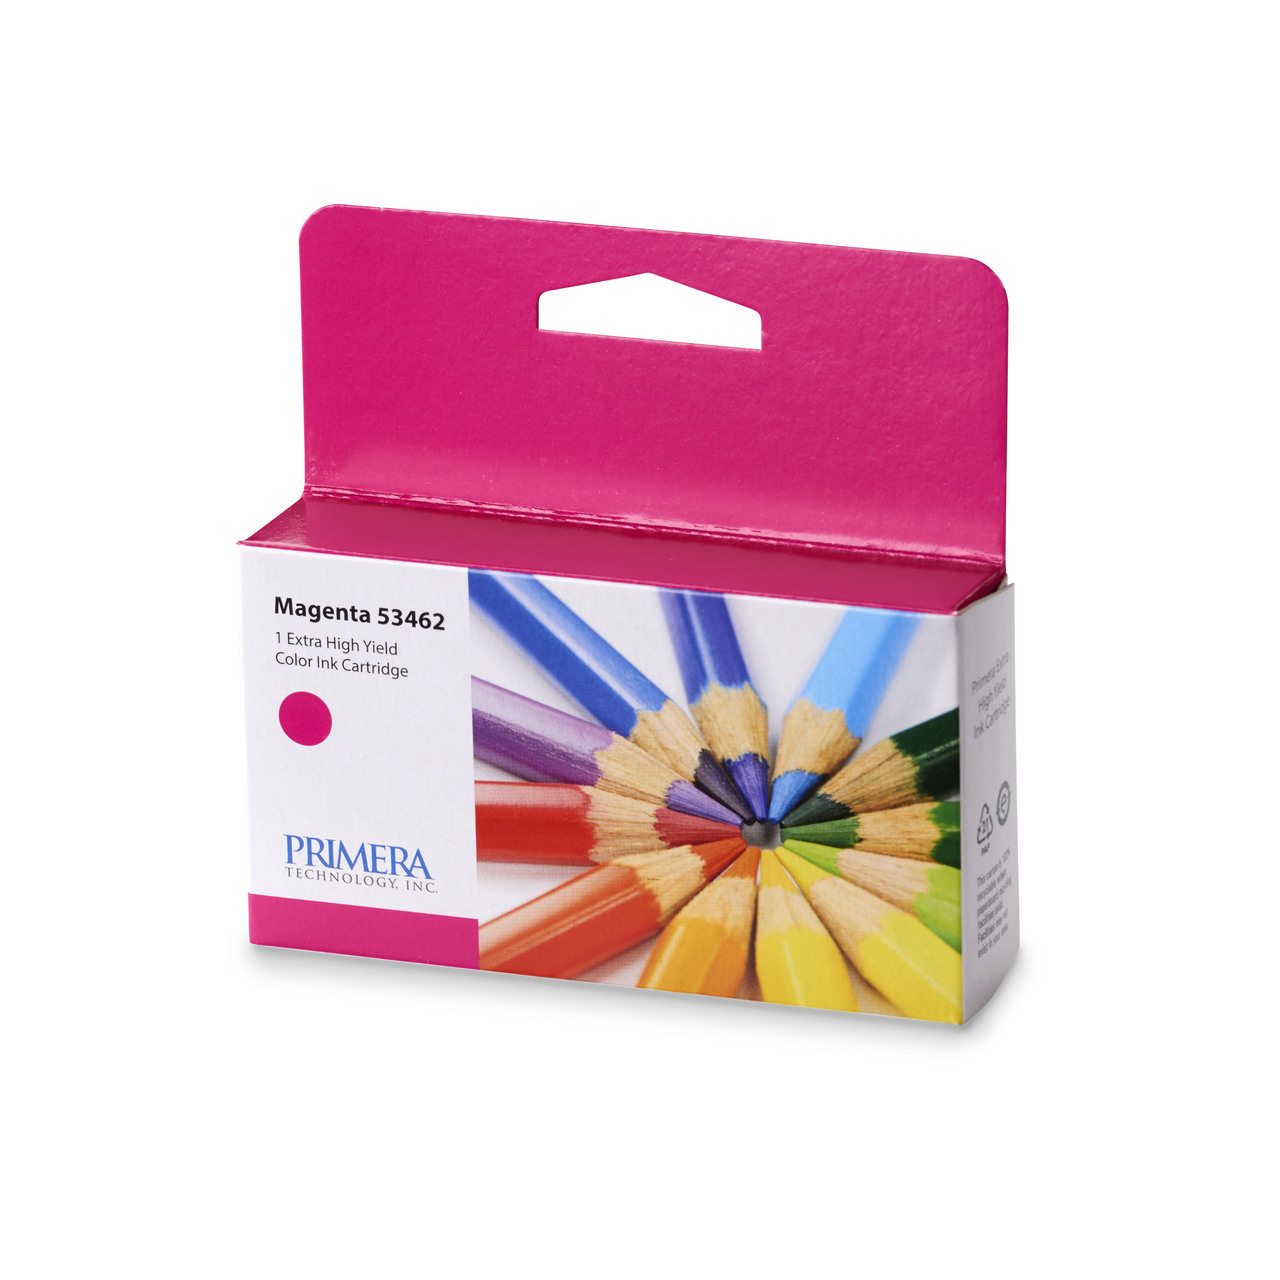 Primera LX2000 Magenta Ink Cartridge